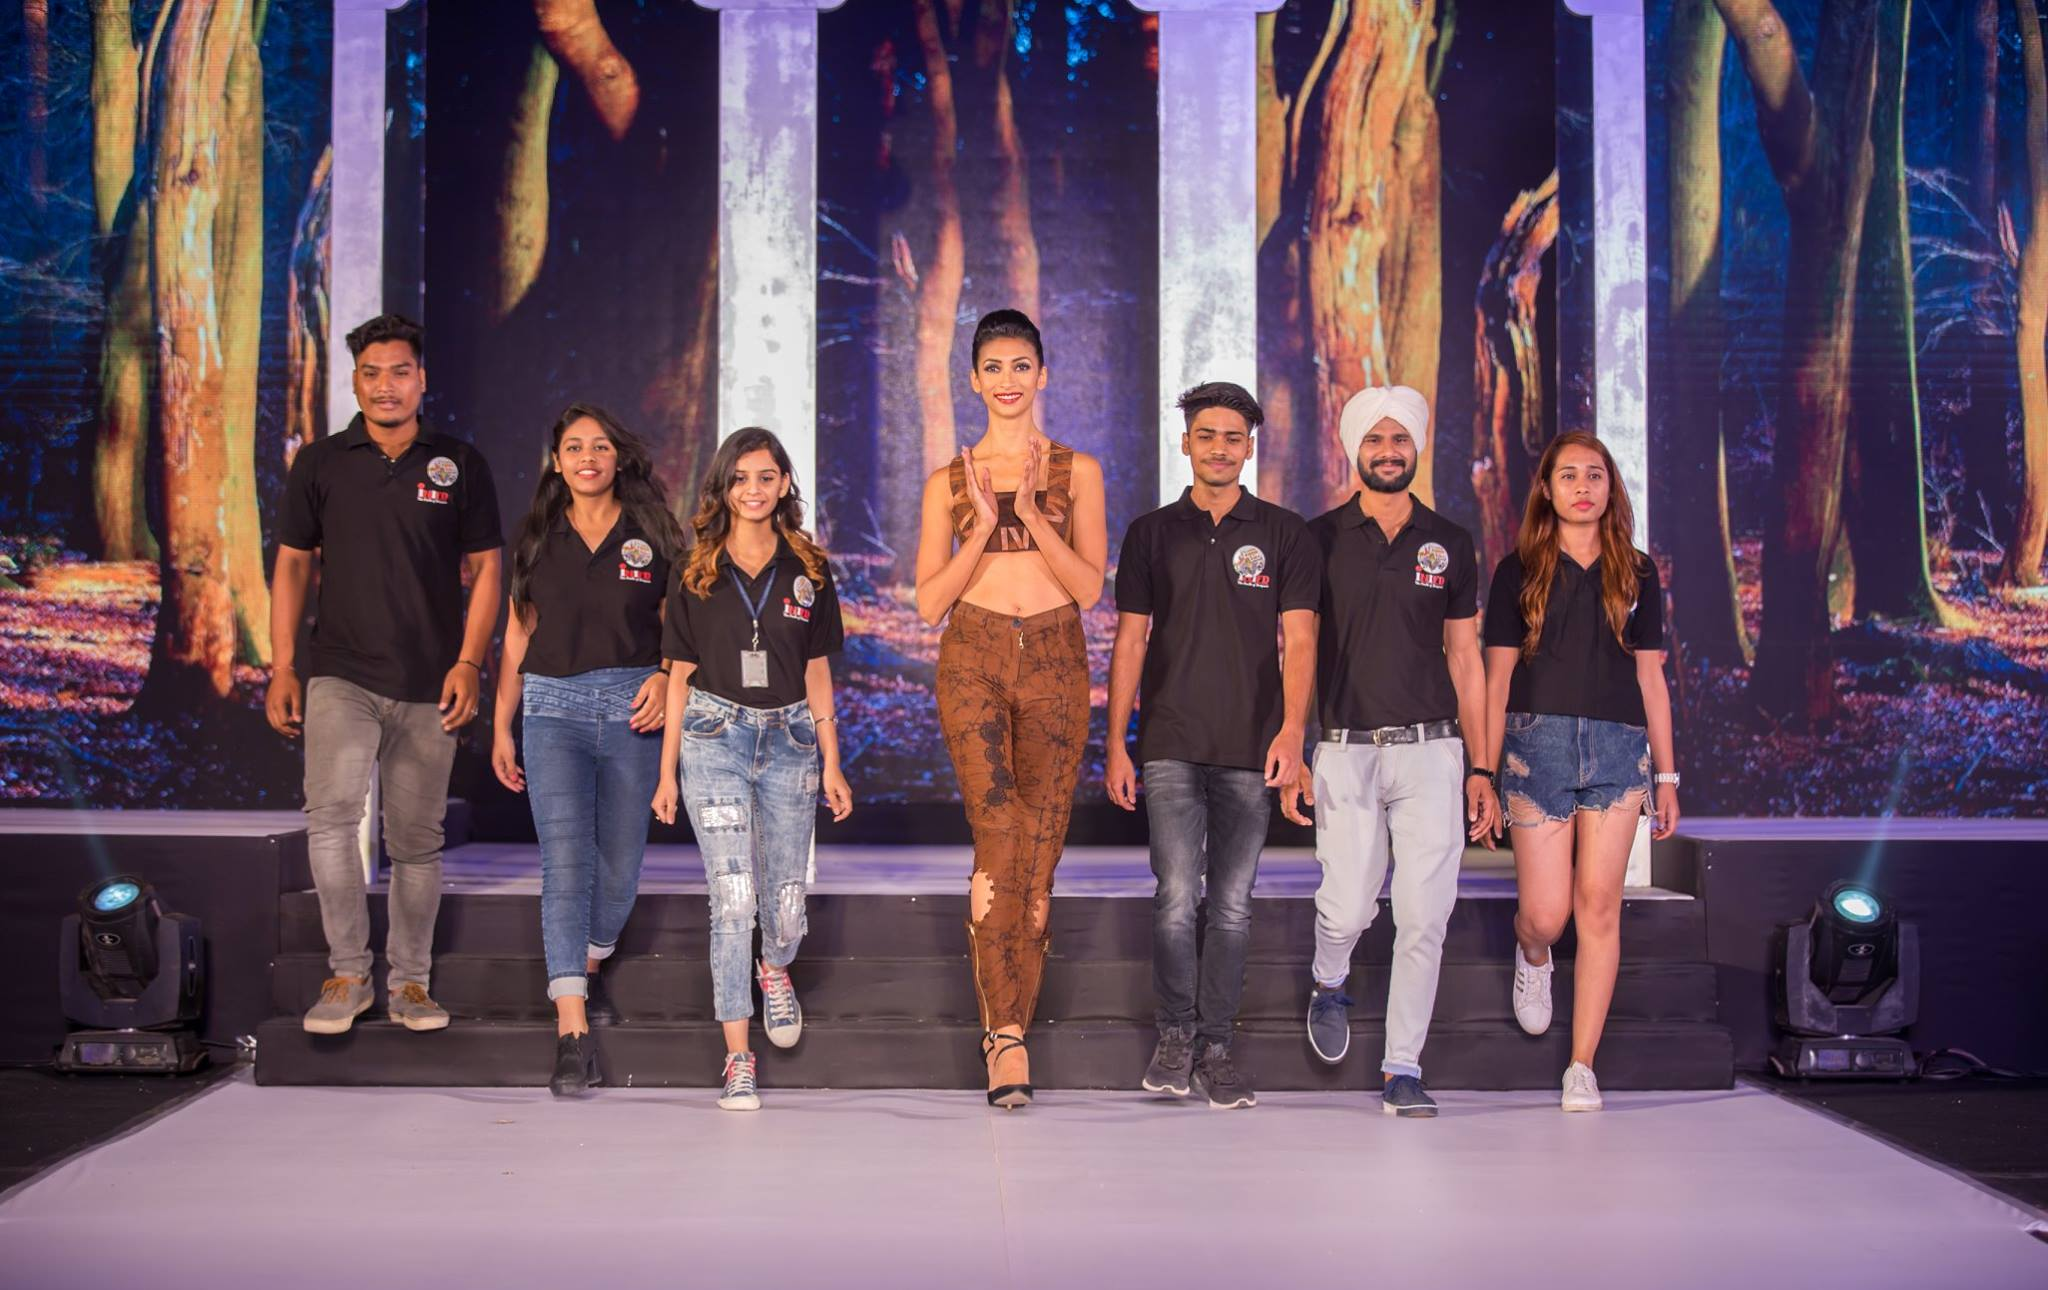 Inter National Institute Of Fashion Design Jaipur Courses Fees Placements Ranking Admission 2020